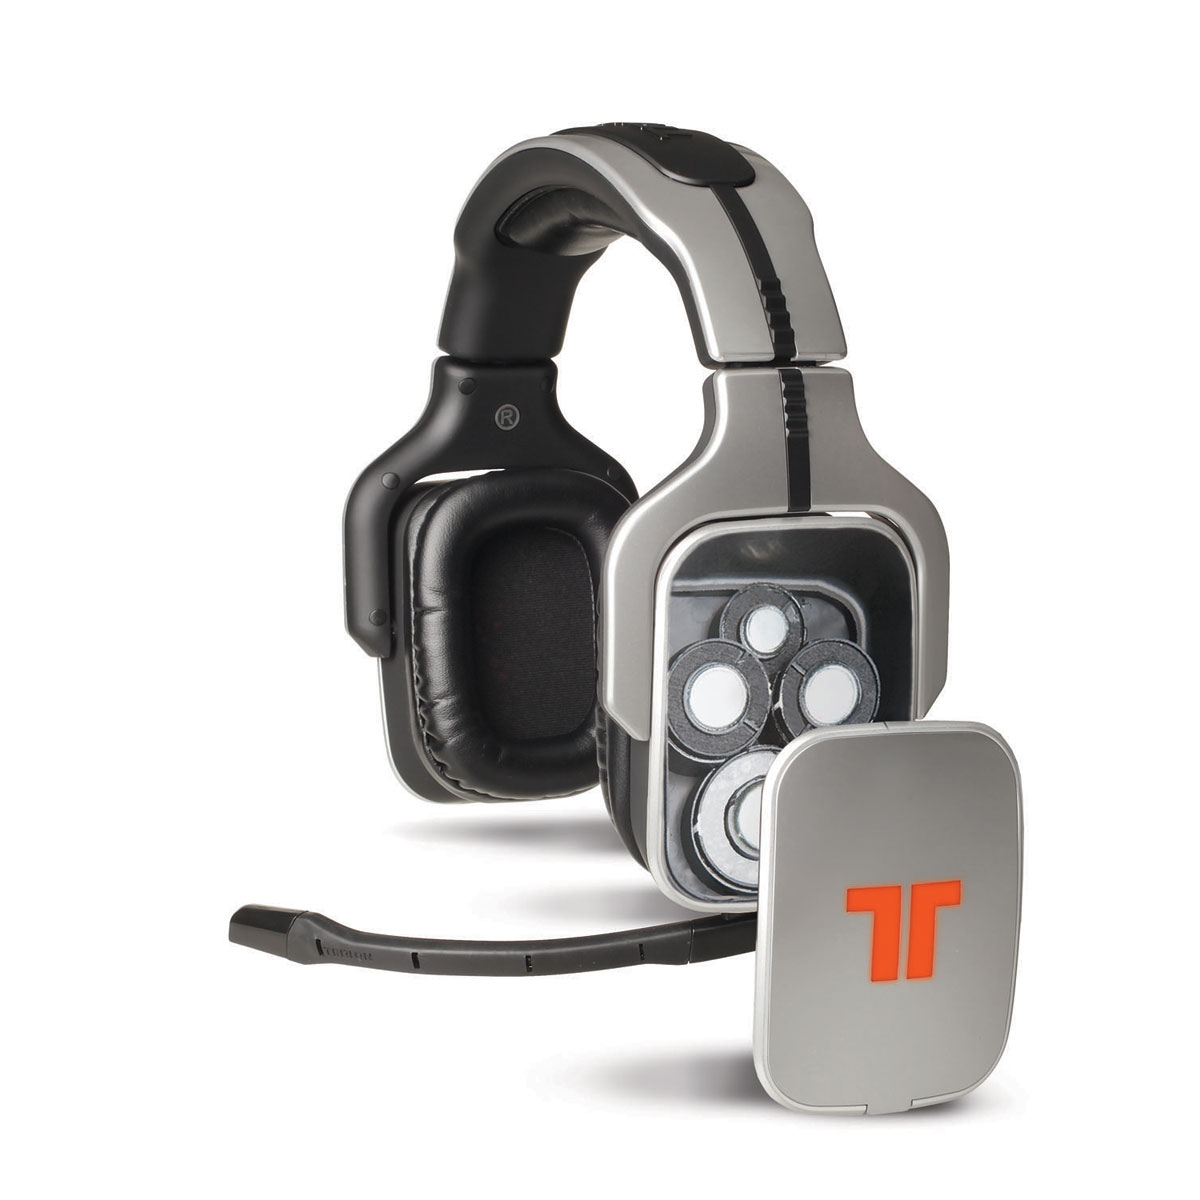 tritton ax pro pc mac ps3 xbox 360 ax611 achat vente micro casque gamer sur. Black Bedroom Furniture Sets. Home Design Ideas